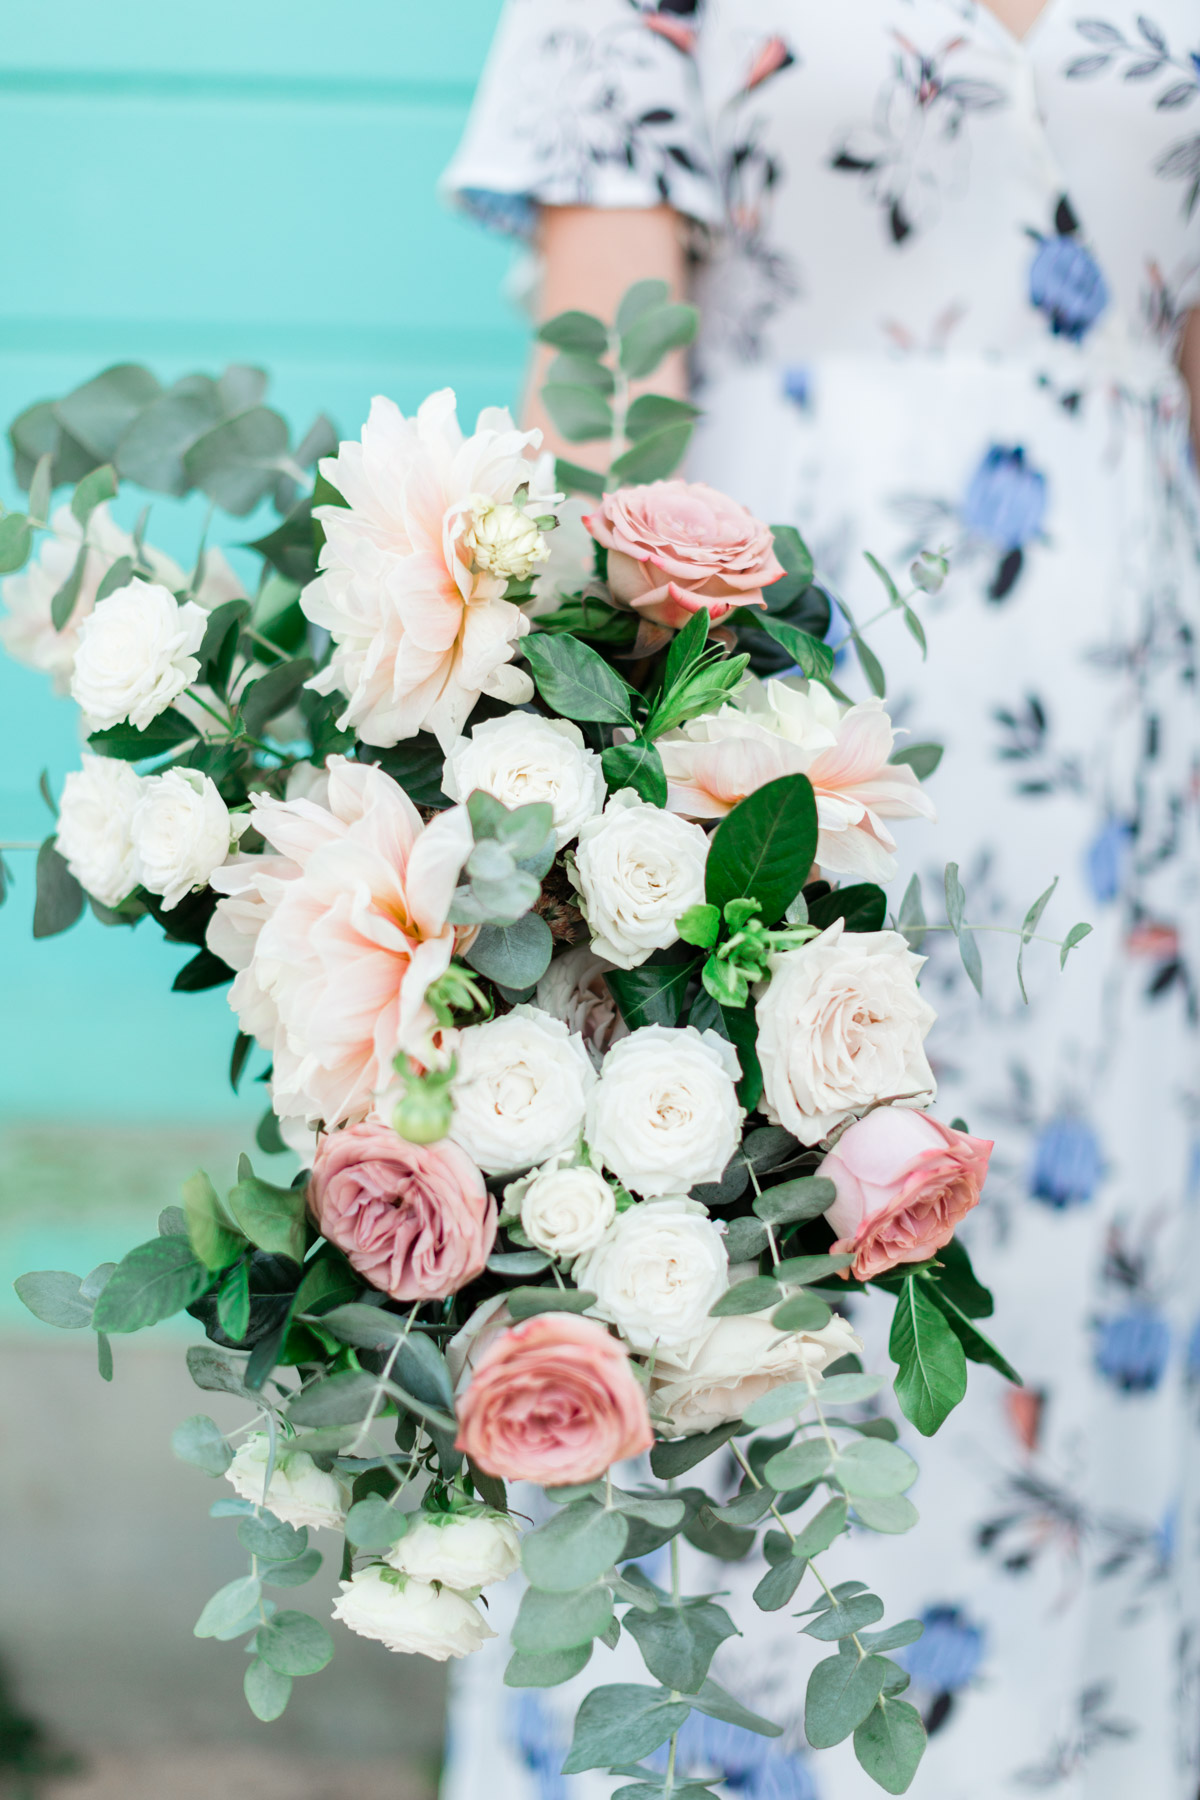 Romantic and elegant blush dahlia, white rose and eucalyptus bridal bouquet | Newport Beach, CA | Compass Floral | Wedding Florist in San Diego and Southern California | Cavin Elizabeth Photography